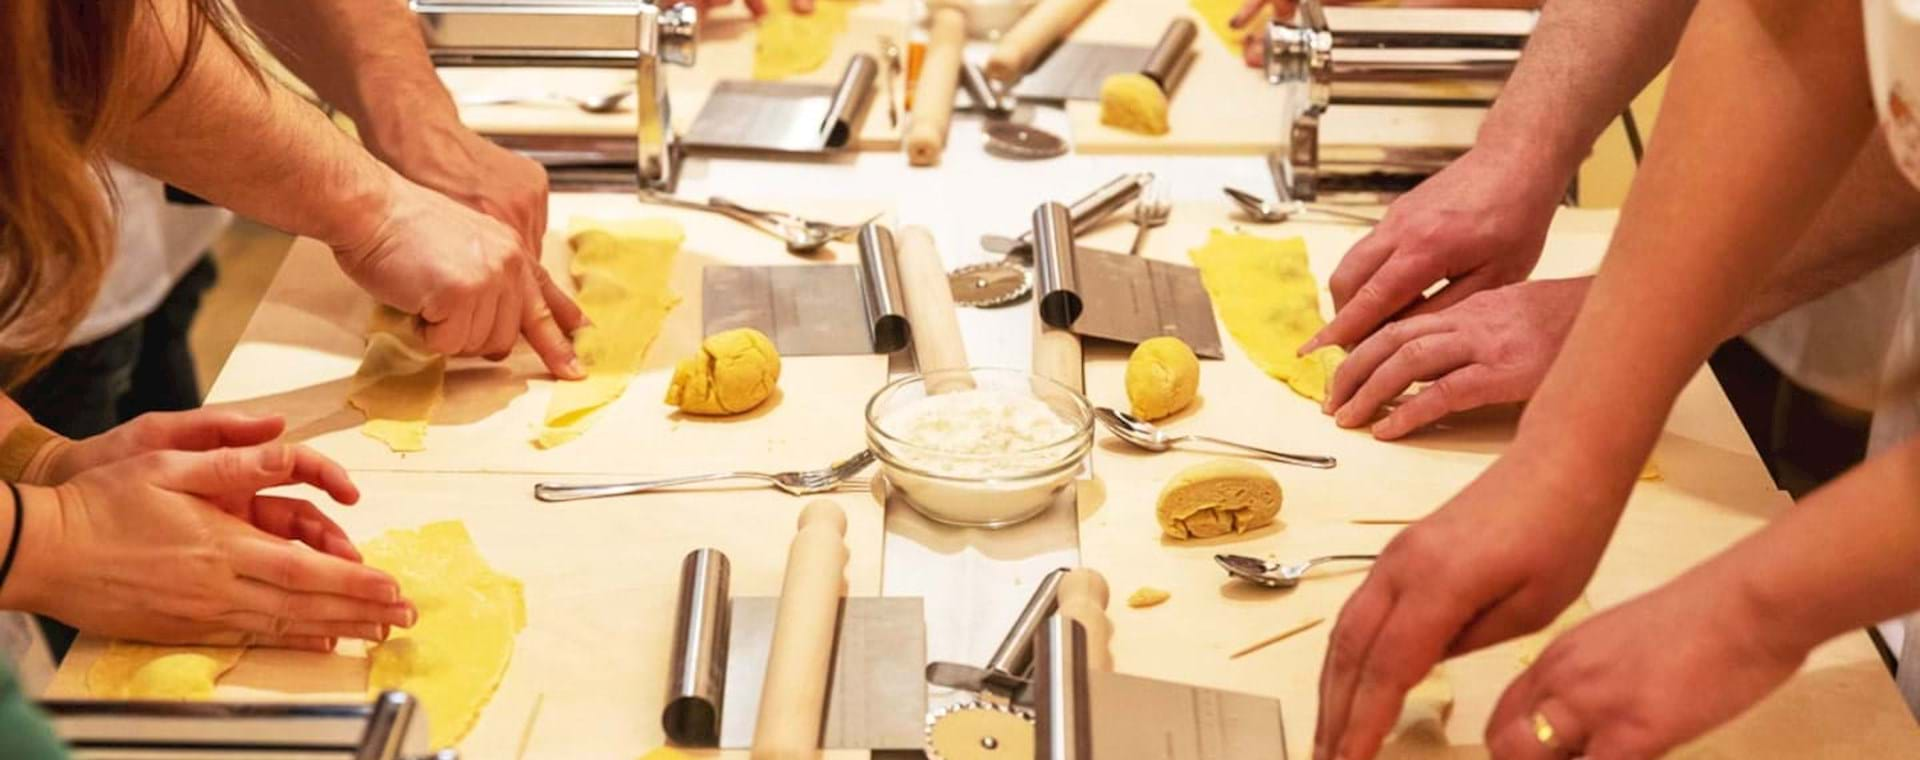 Authentic Italy: Traditional Pasta-Making Experience in a Roman Home